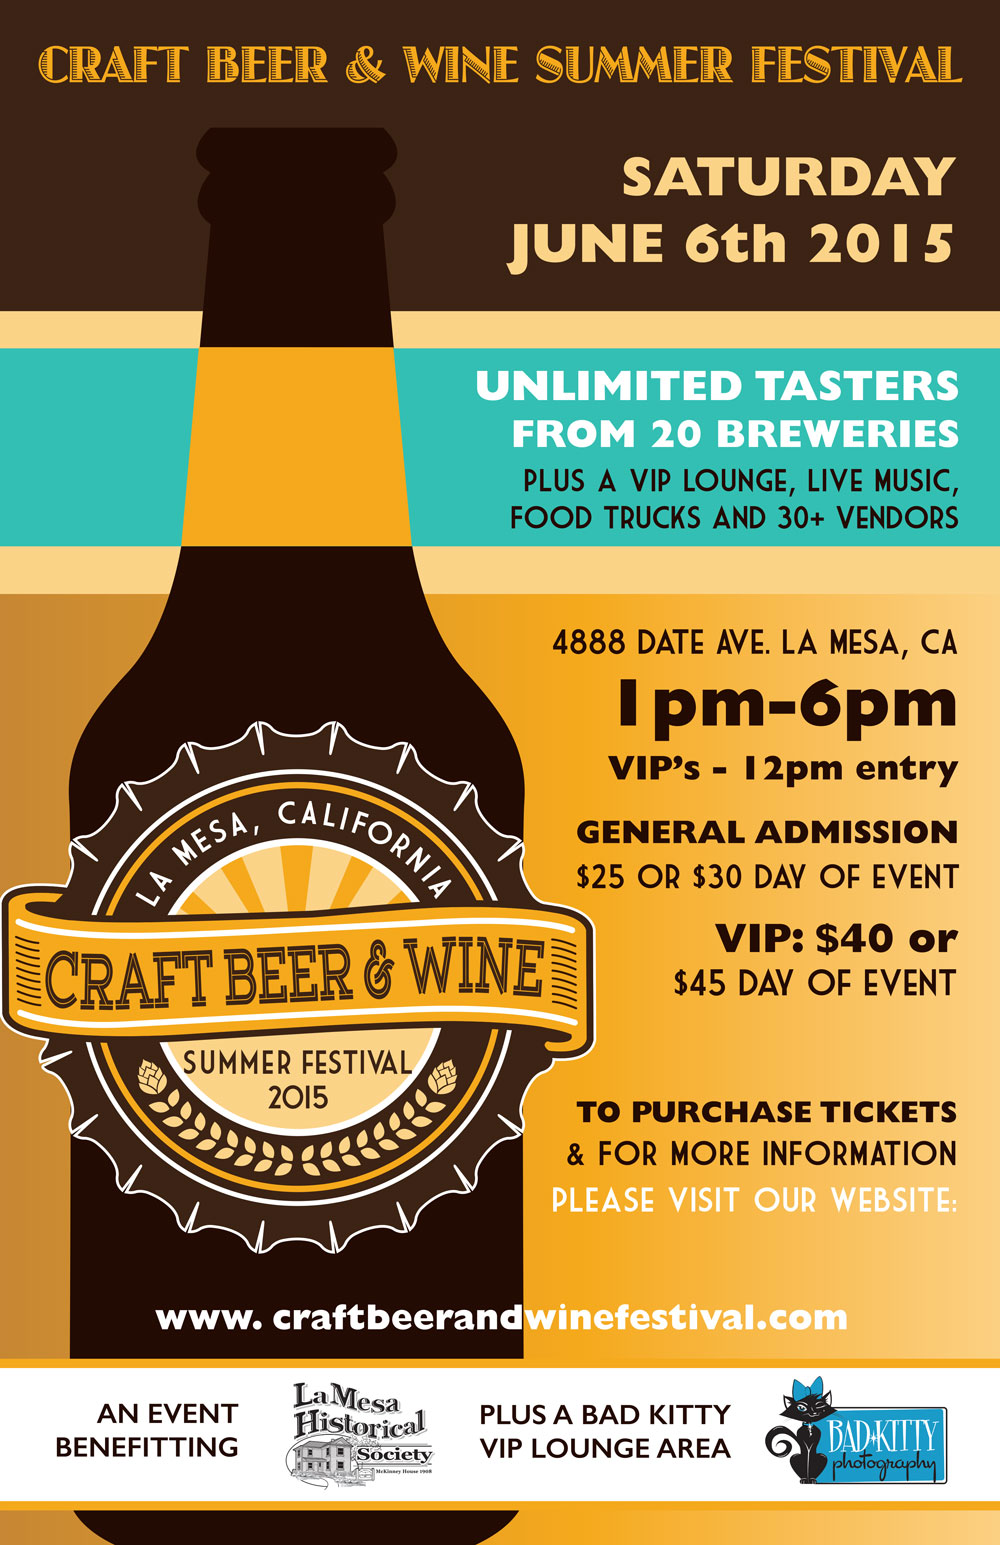 Craft Beer & Wine Summer Festival - La-Mesa - June 6, 2015